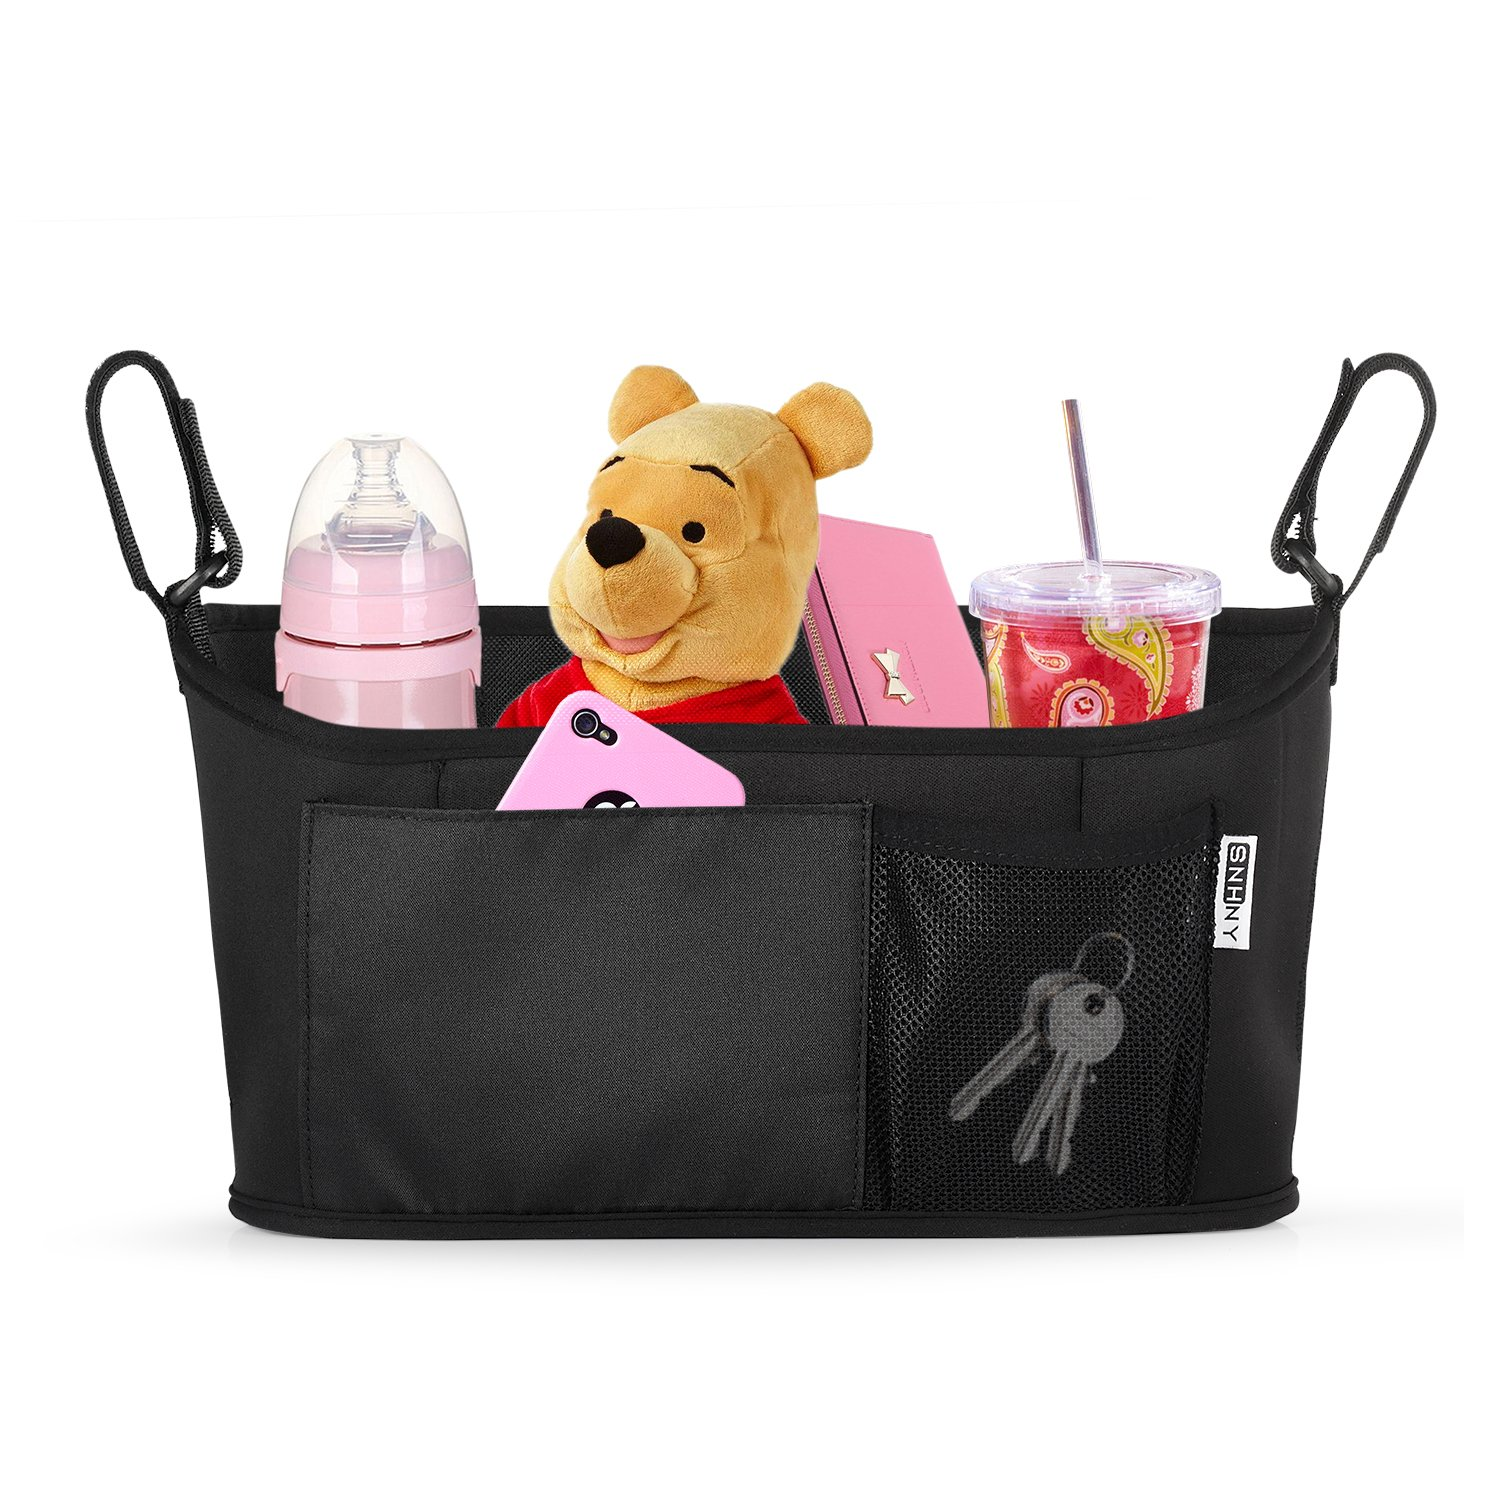 Top Universal Stroller Organizer by SNHNY; The Best Stroller Accessories; Universal Baby Diaper Stroller Bag with Accessary Bag. (Black Simpler)